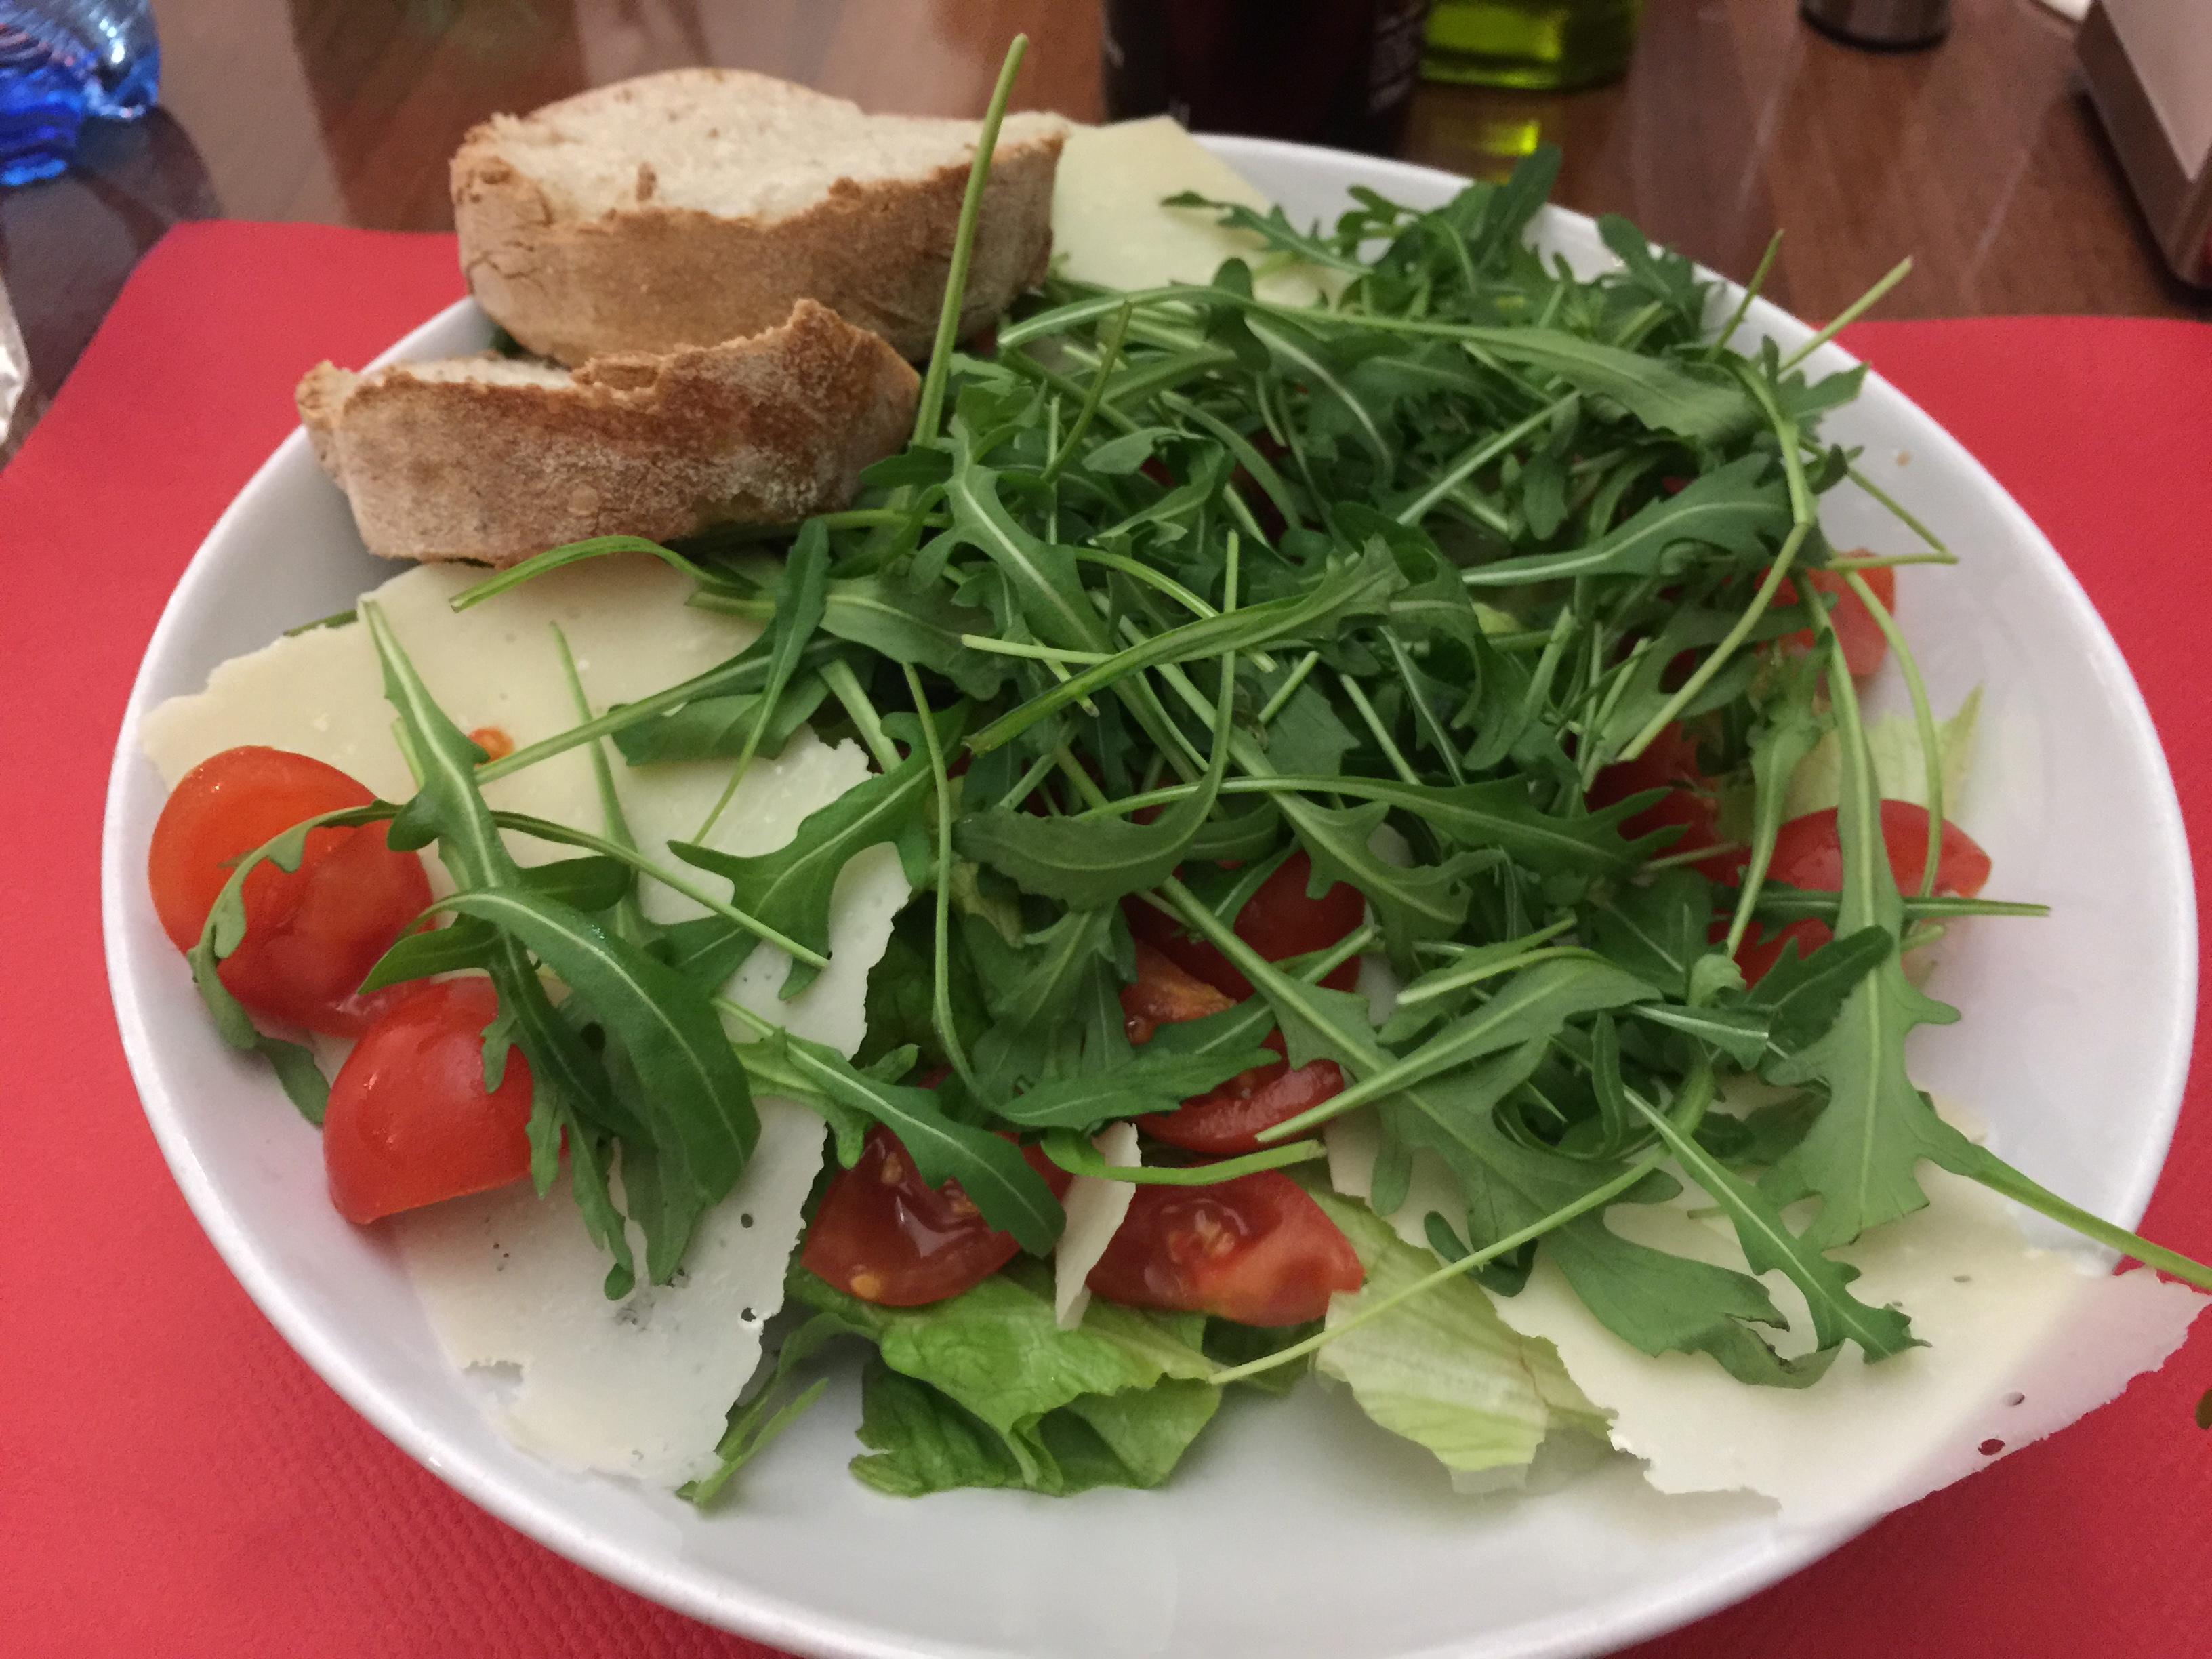 Gluten-free option 1 in Italy: salad (removing the bread)